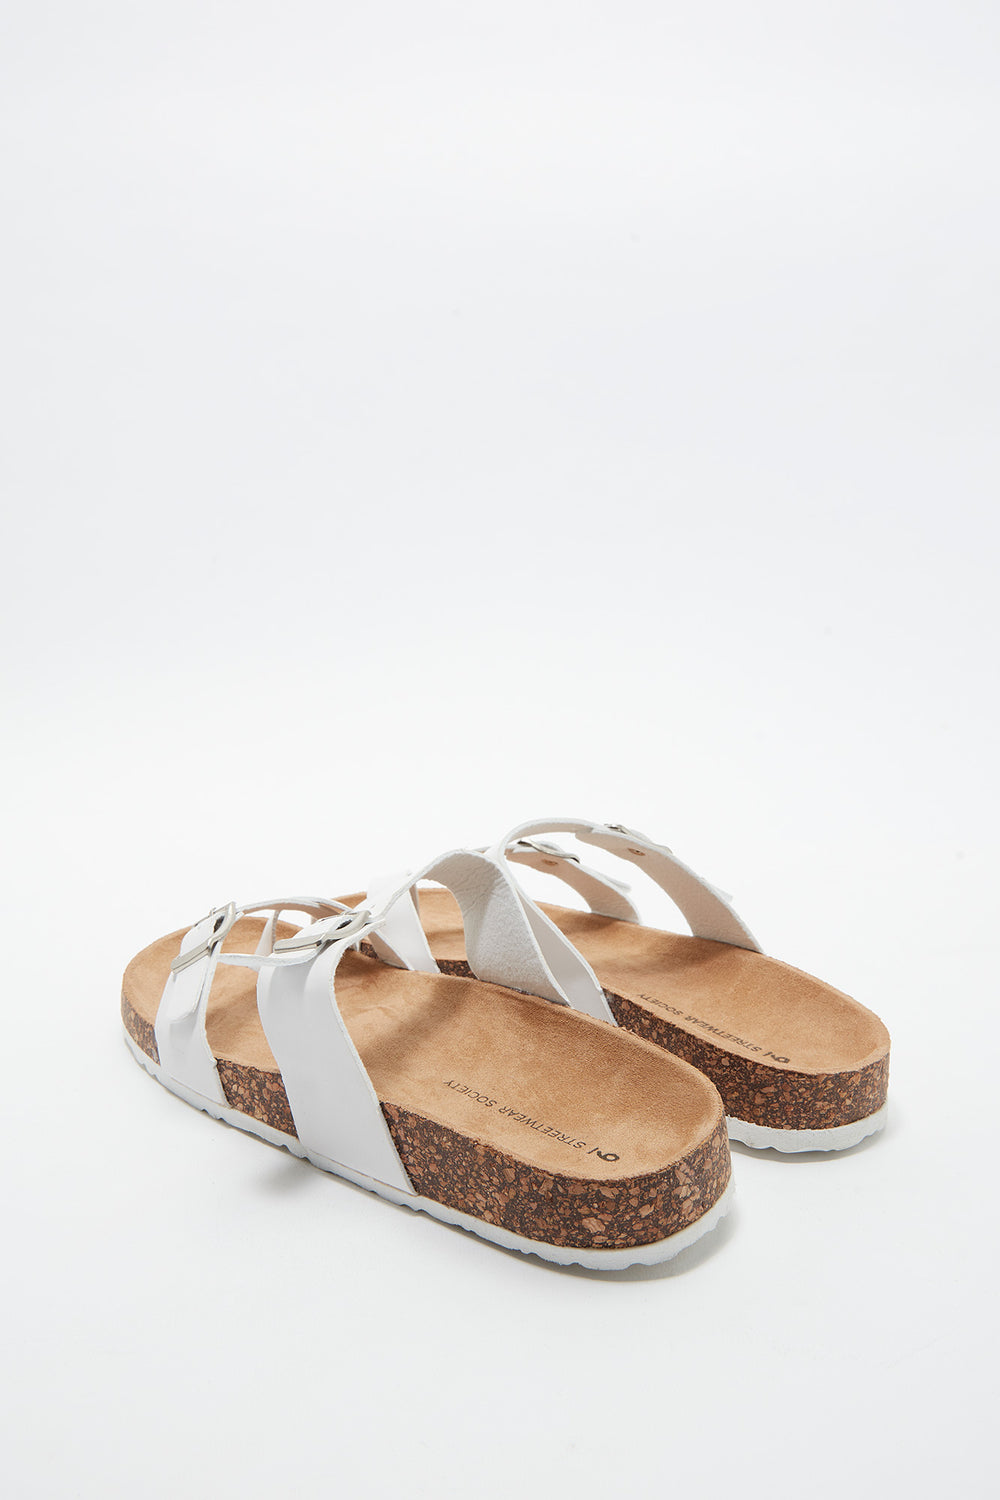 Dual Buckle Strap Toe Piece Slide White